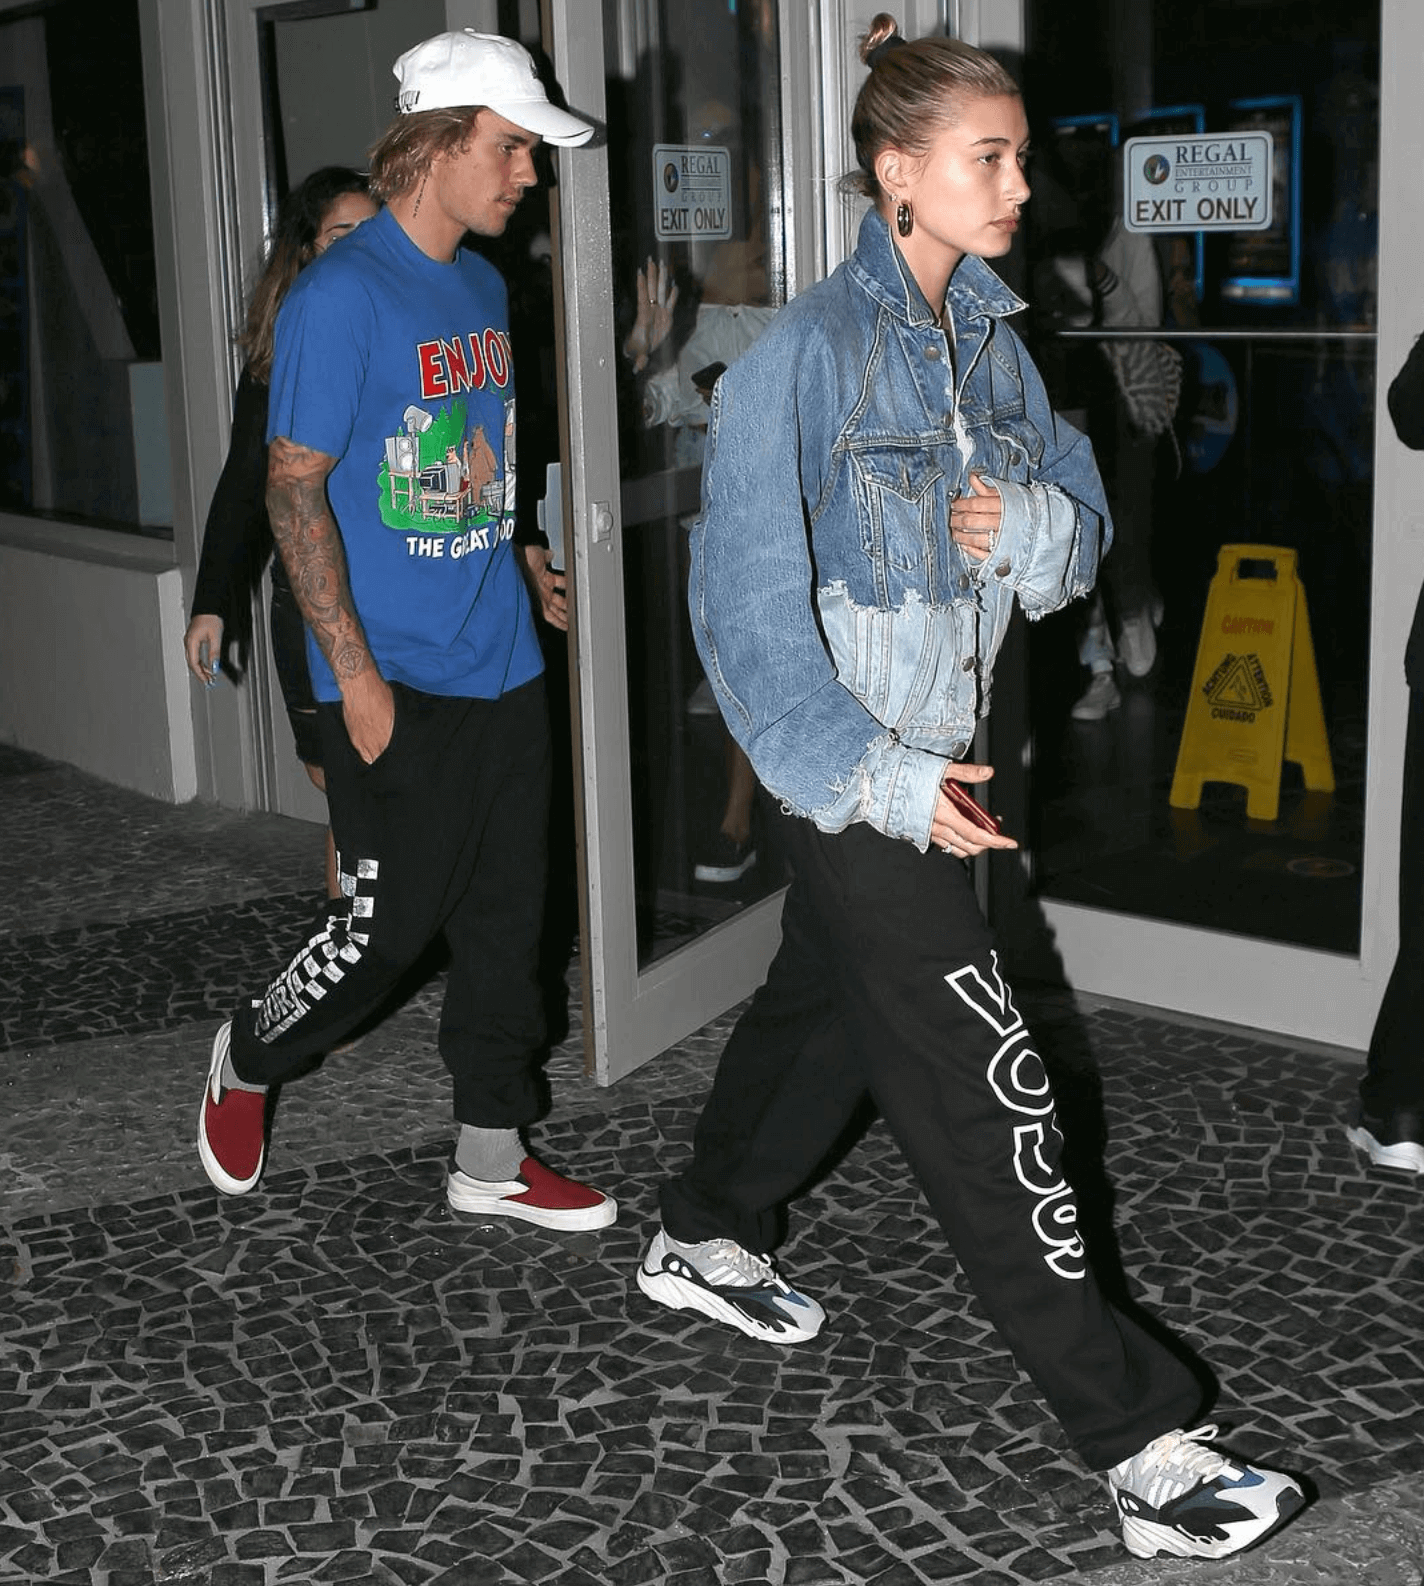 Justin Bieber in the Vans Slip on & Hailey Baldwin in the adidas Yeezy Boost 700